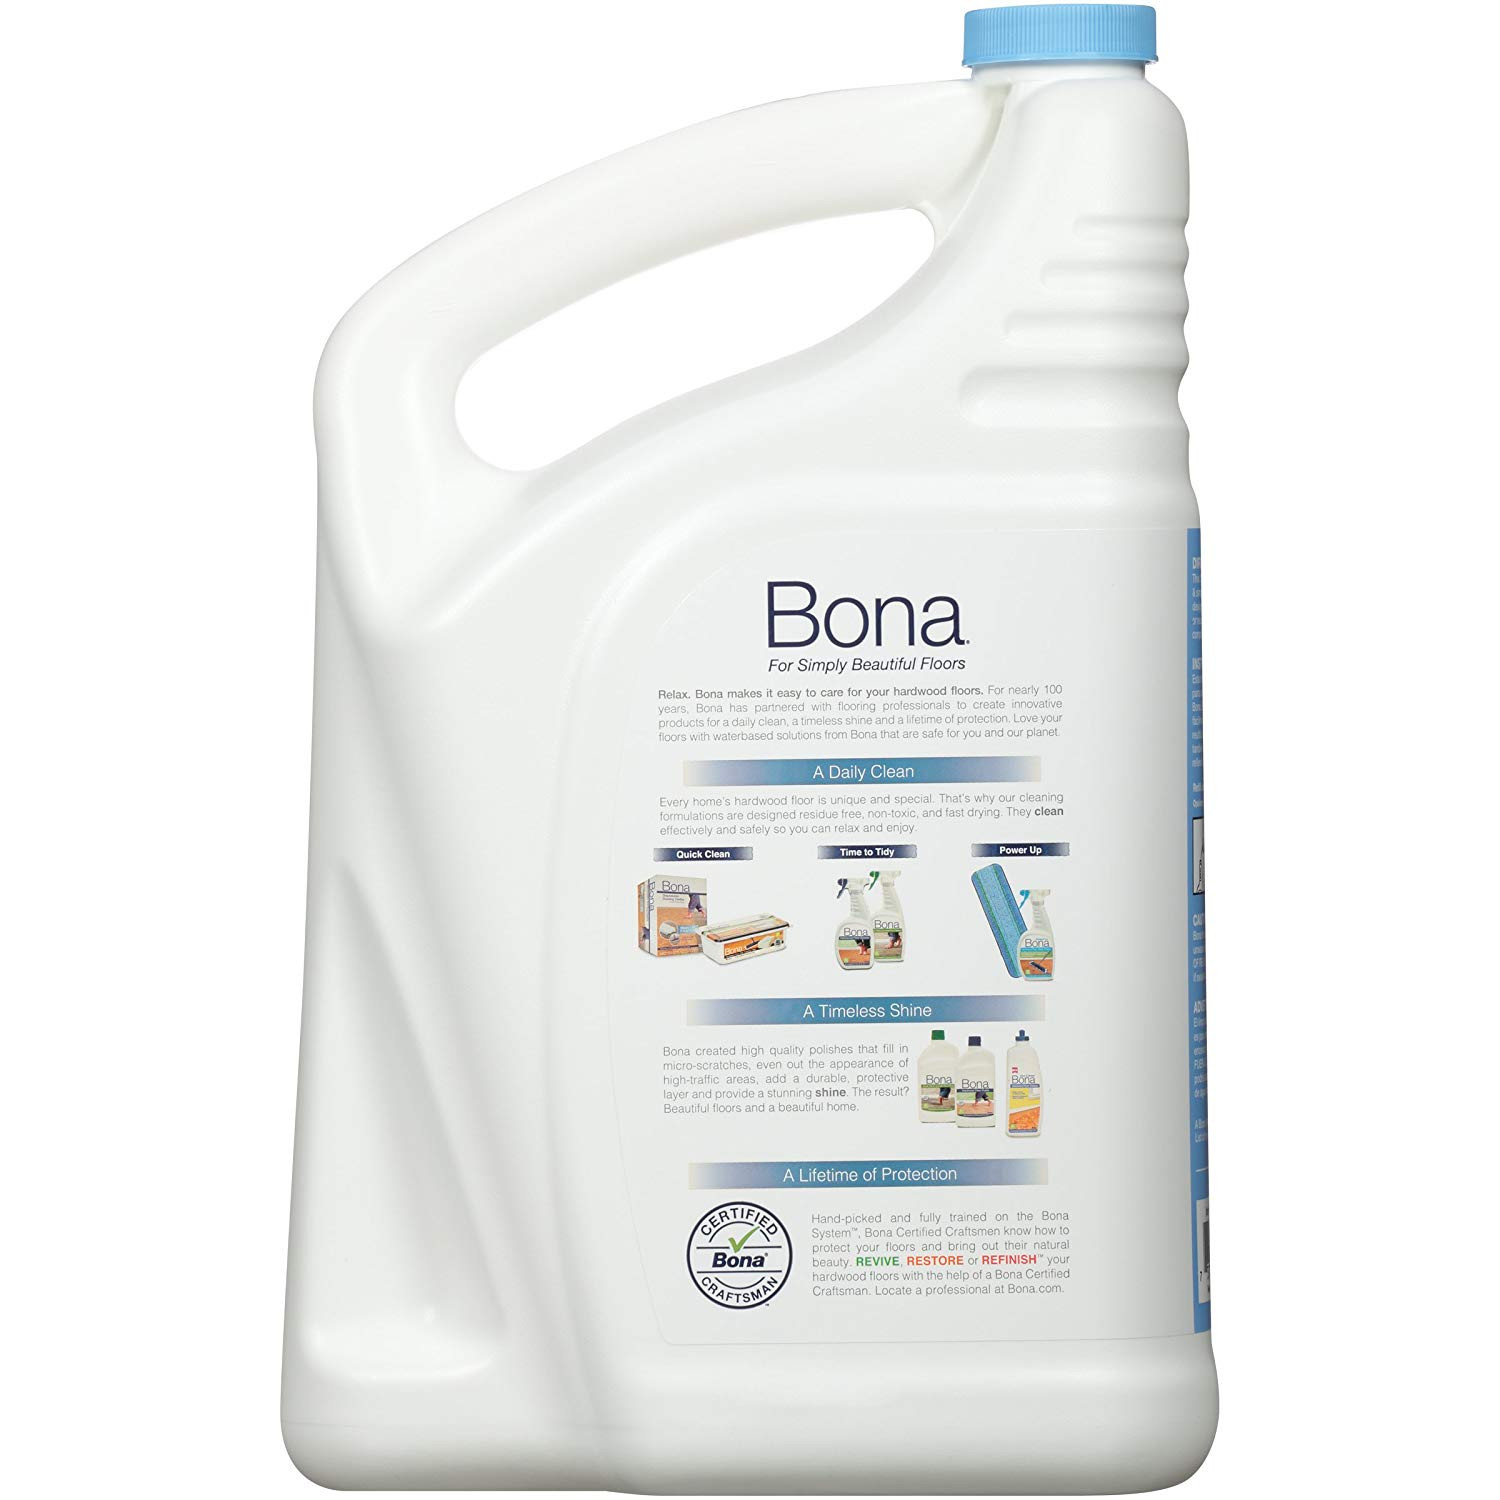 Hardwood Floor Refinishing Products Reviews Of Amazon Com Bona Wm700018182 Free Simple Hardwood Floor Cleaner Intended for Amazon Com Bona Wm700018182 Free Simple Hardwood Floor Cleaner Refill 128 Oz Health Personal Care